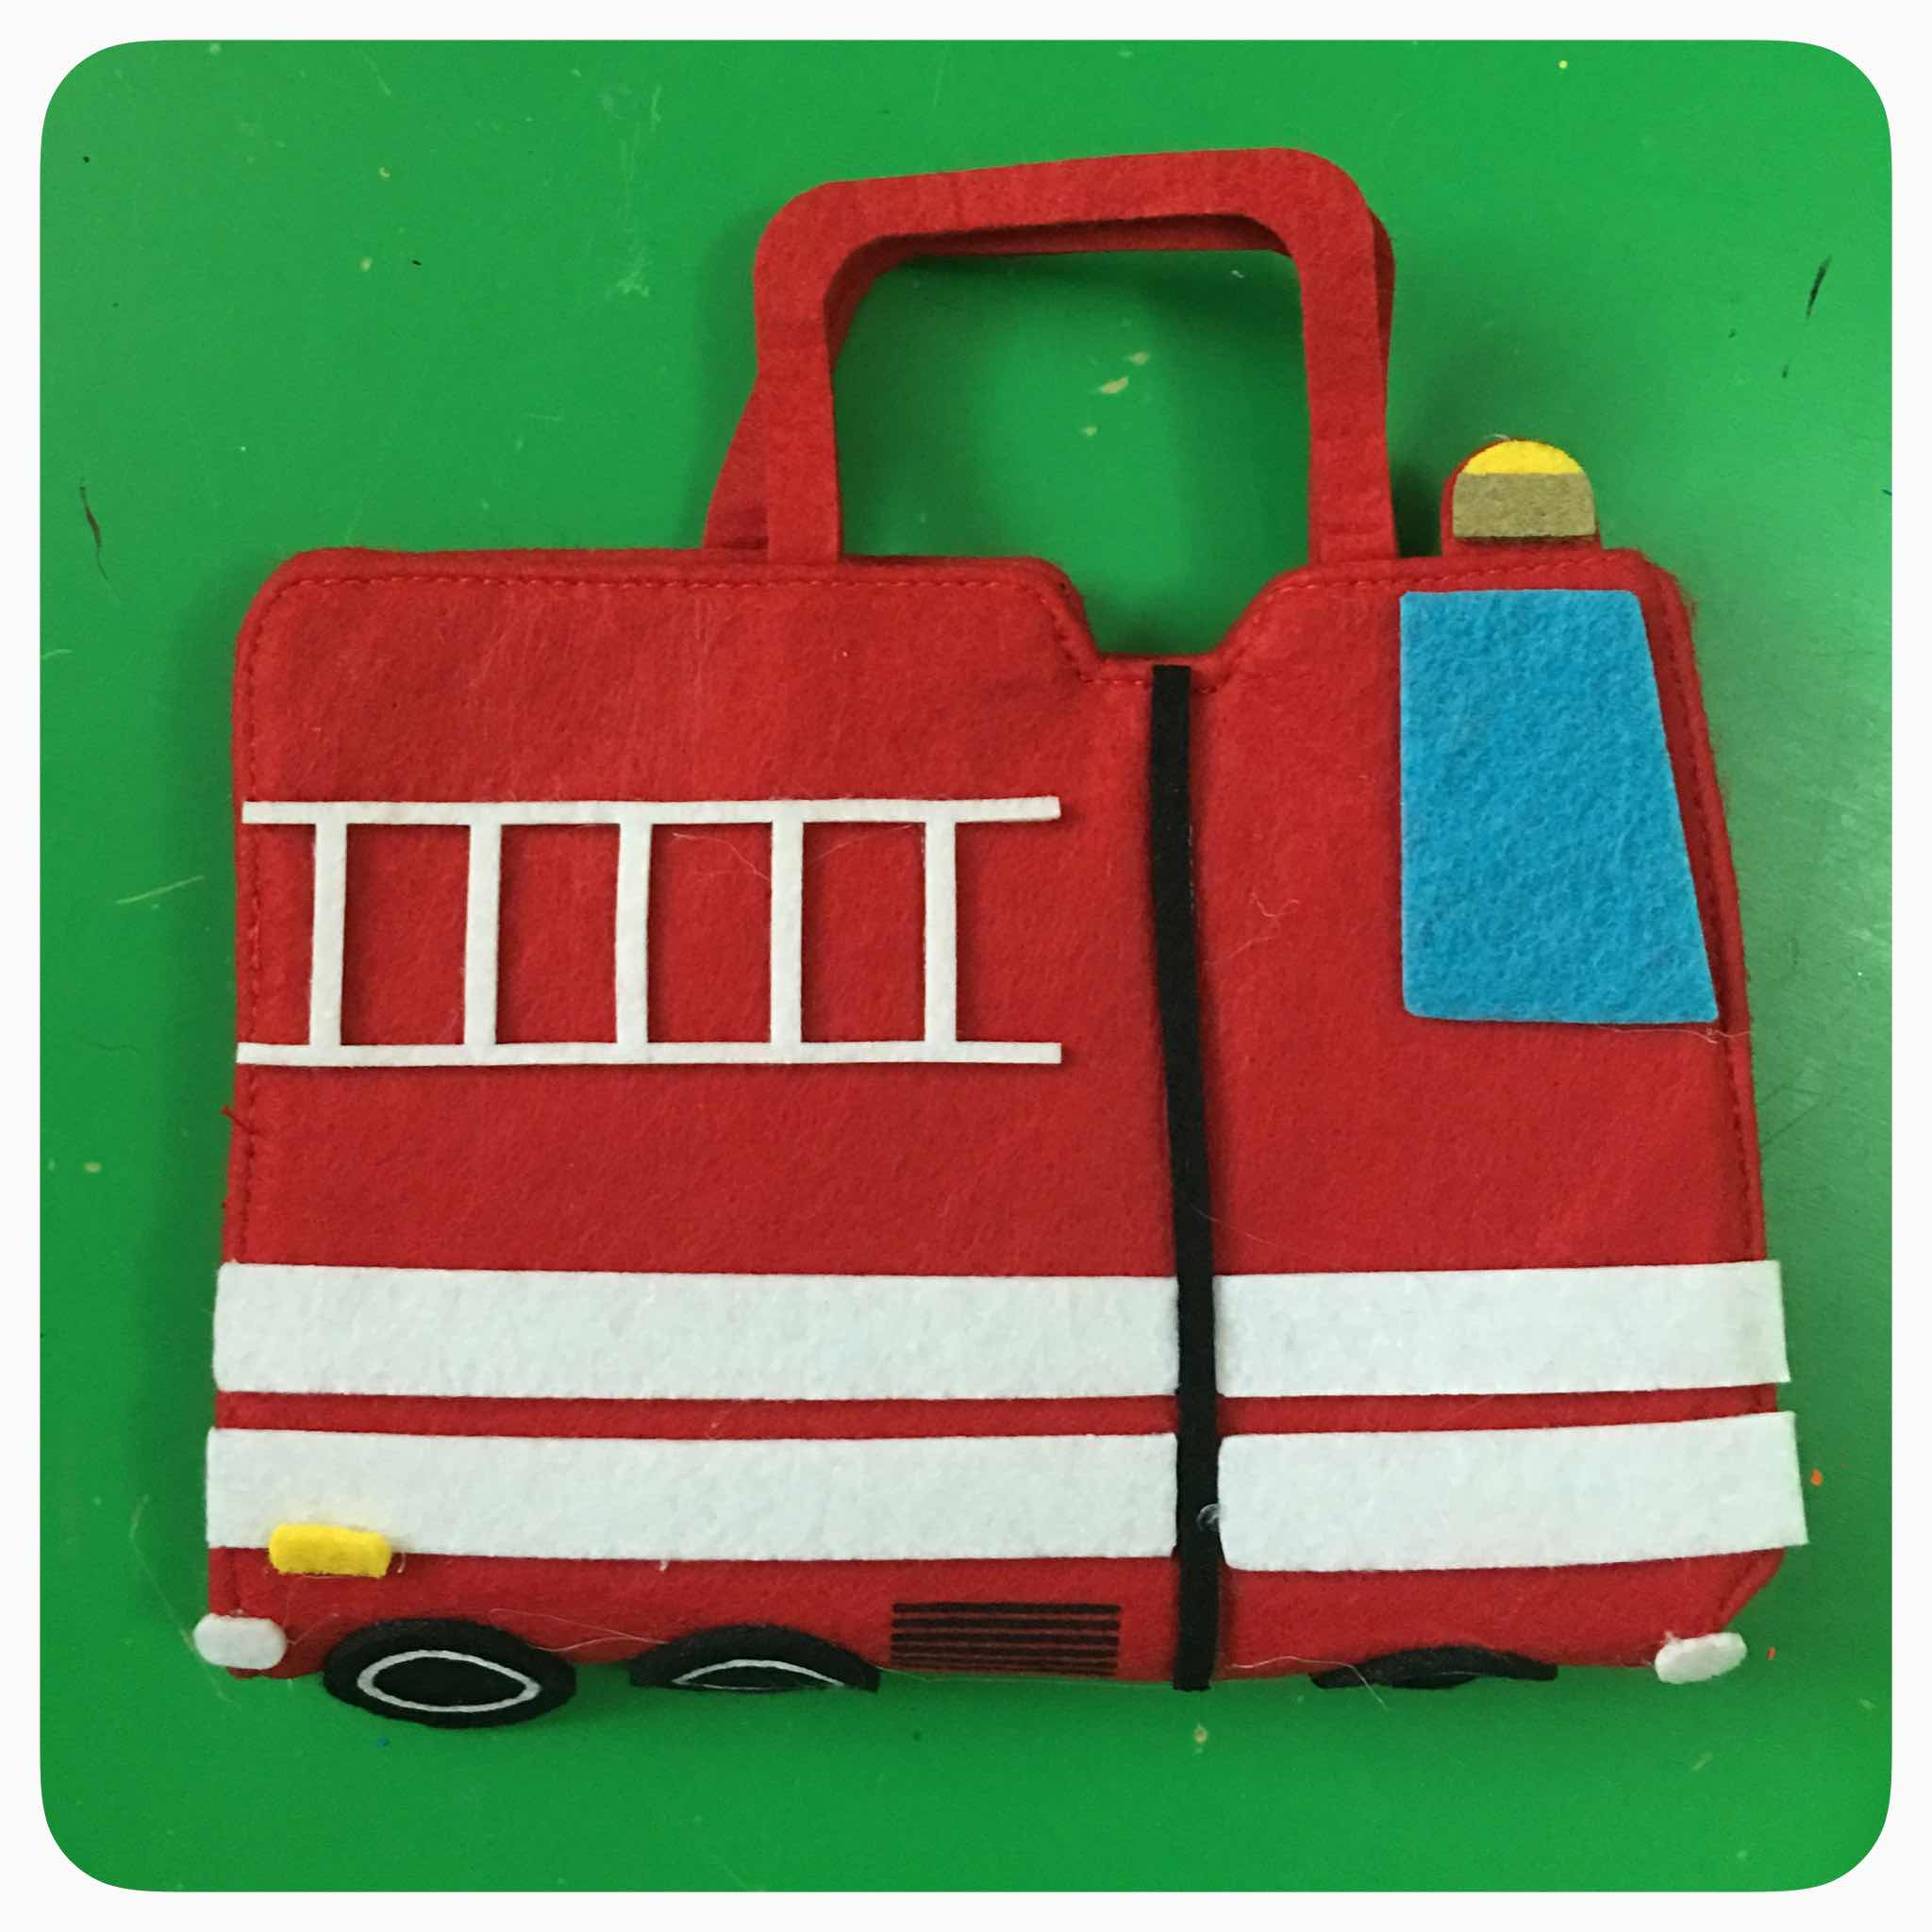 Fire Safety Week: it's important to teach our children how to dial 9-1-1 in an emergency and also how to respond to the questions that would be asked.